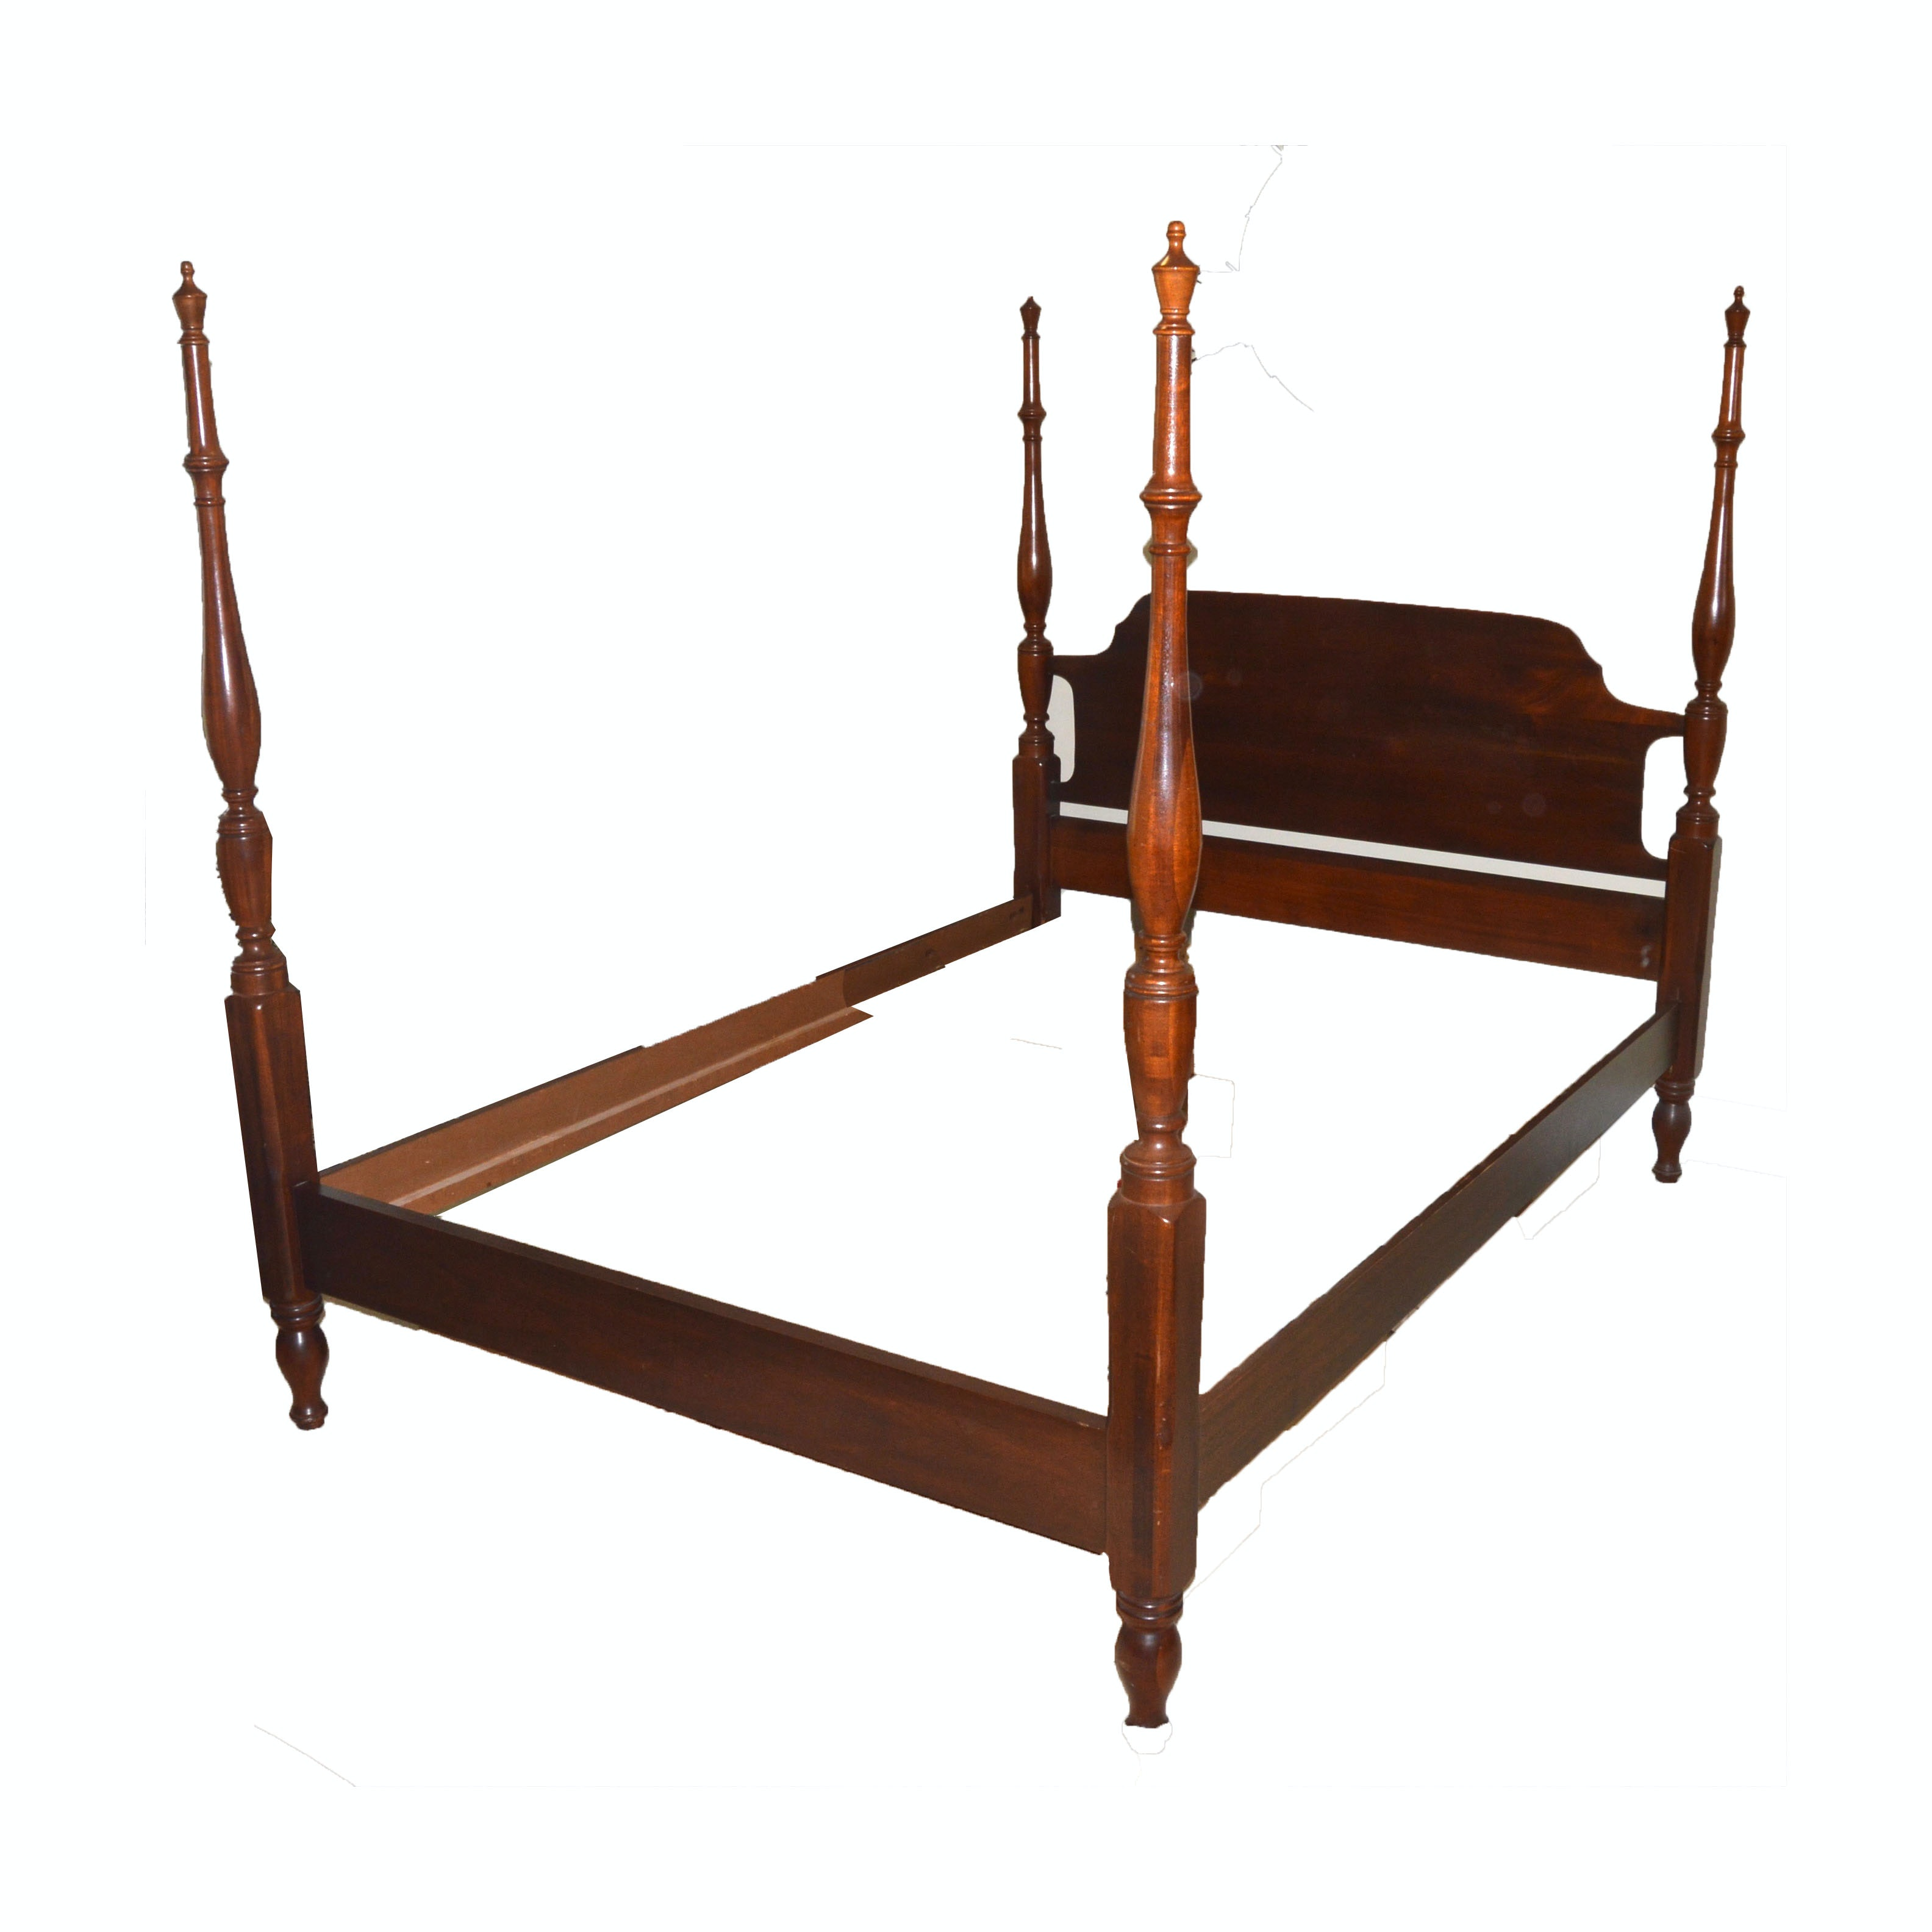 Four Post Full Size Bed Frame By Cresent Furniture ...